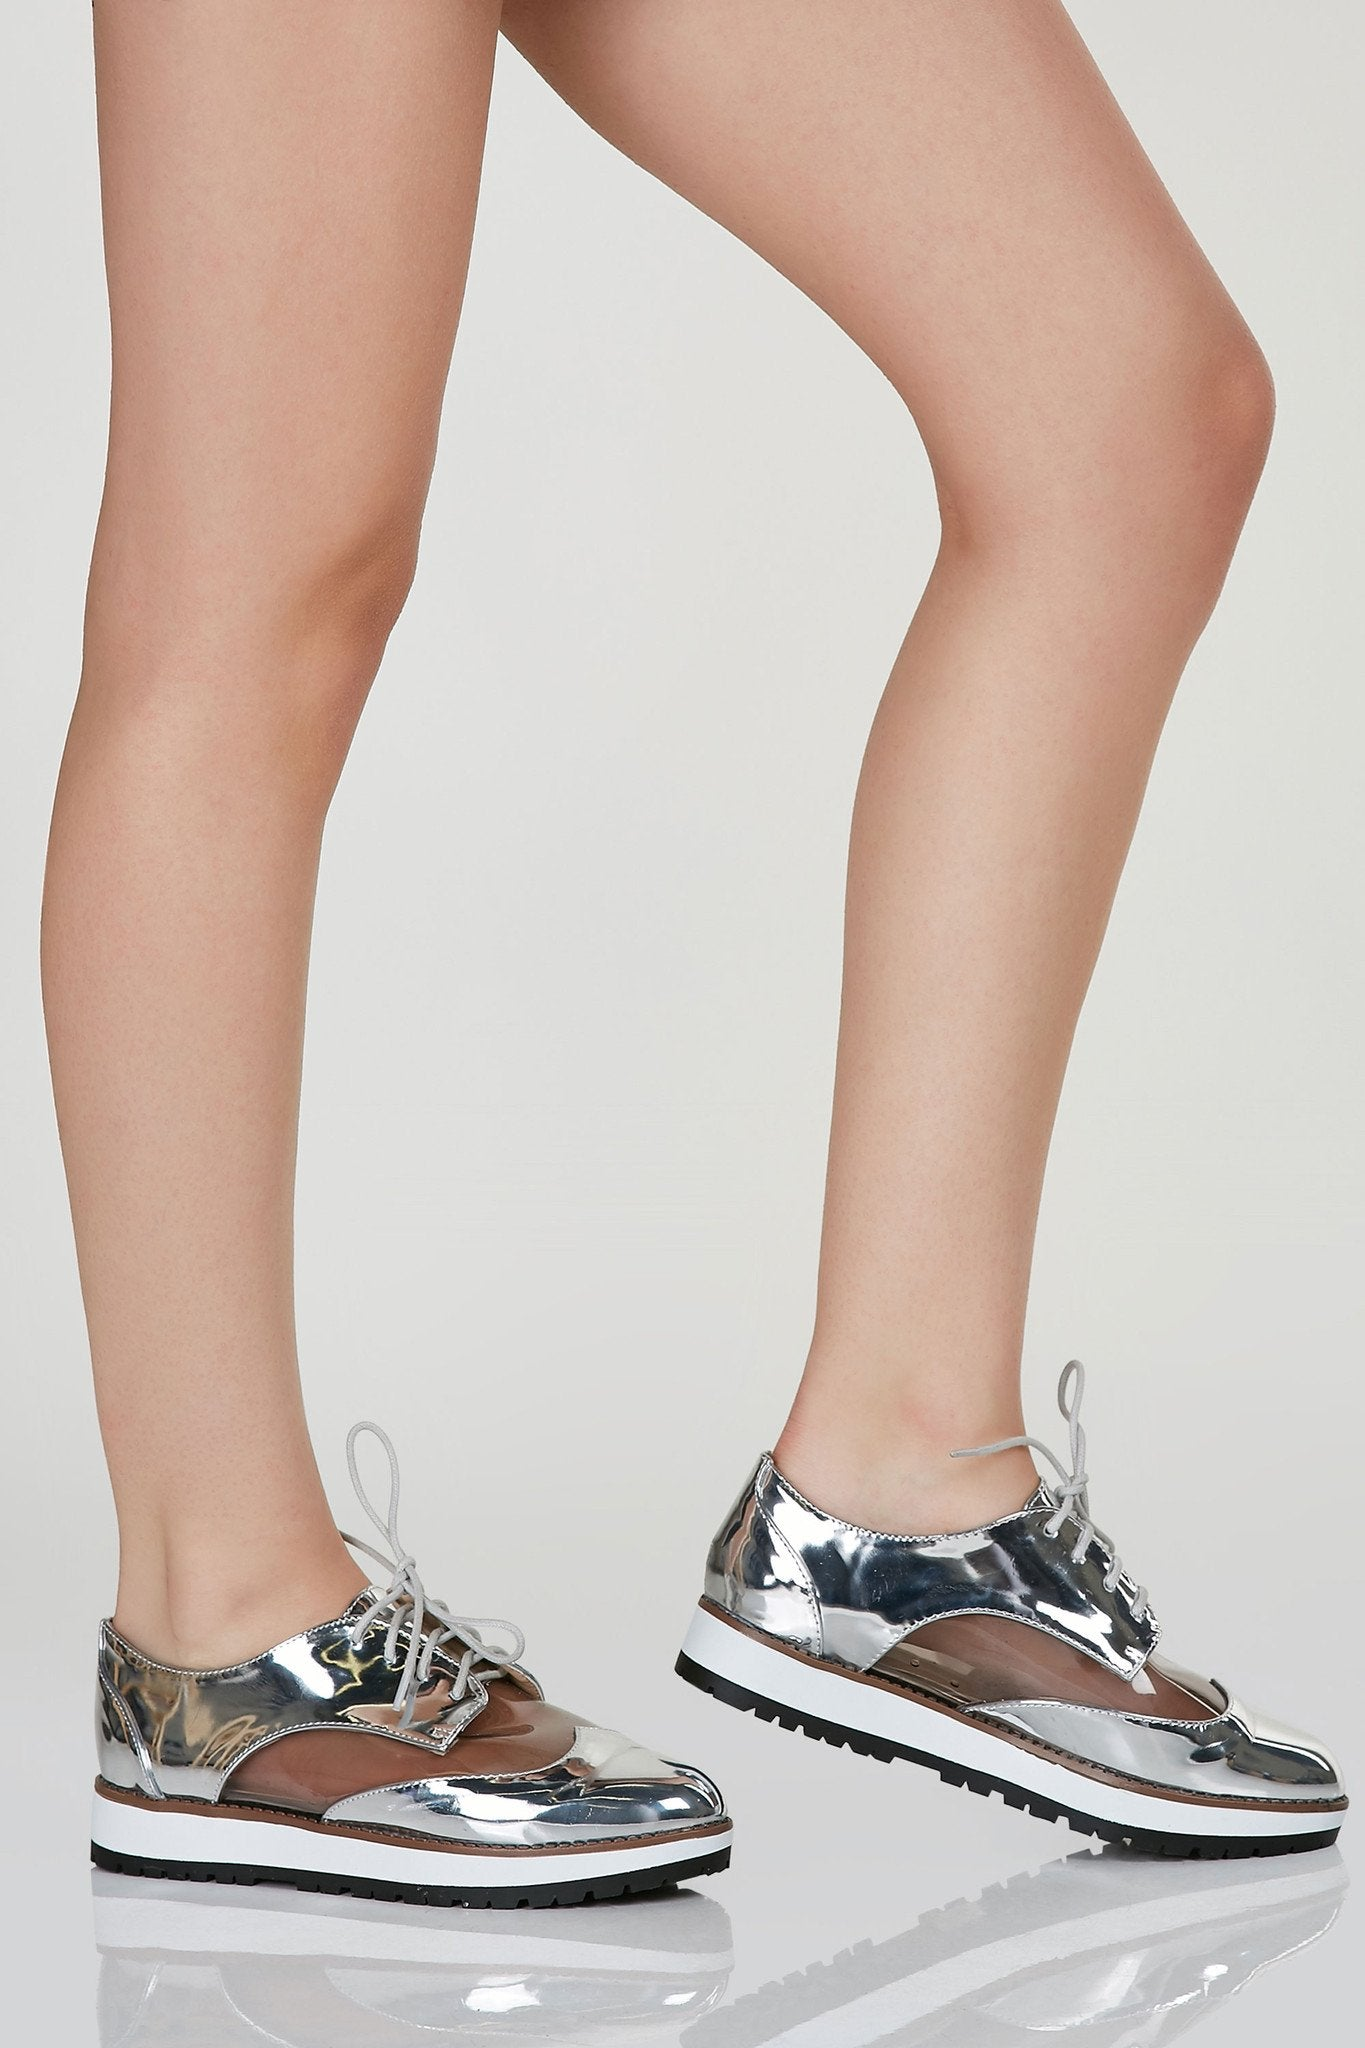 Pointed toe oxfords with classic lace up closure. Metallic finish with contrast clear panels for a peek-a-boo effect.